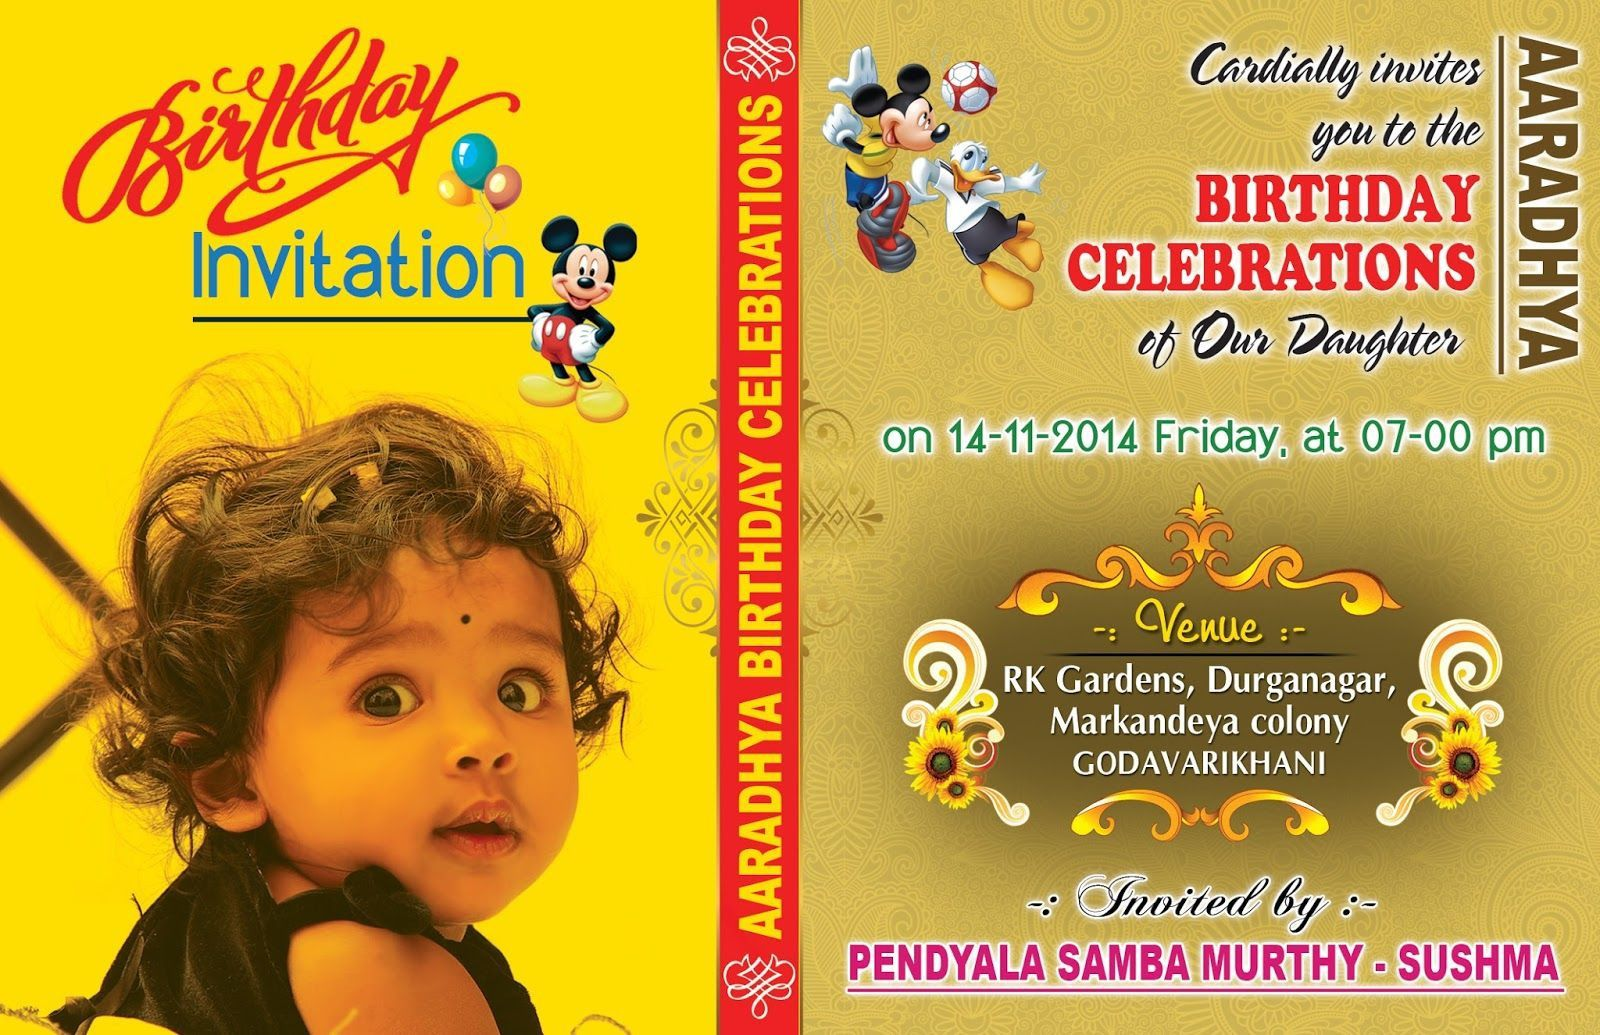 007 Formidable Free Online Birthday Invitation Card Maker With Name And Photo Idea Full